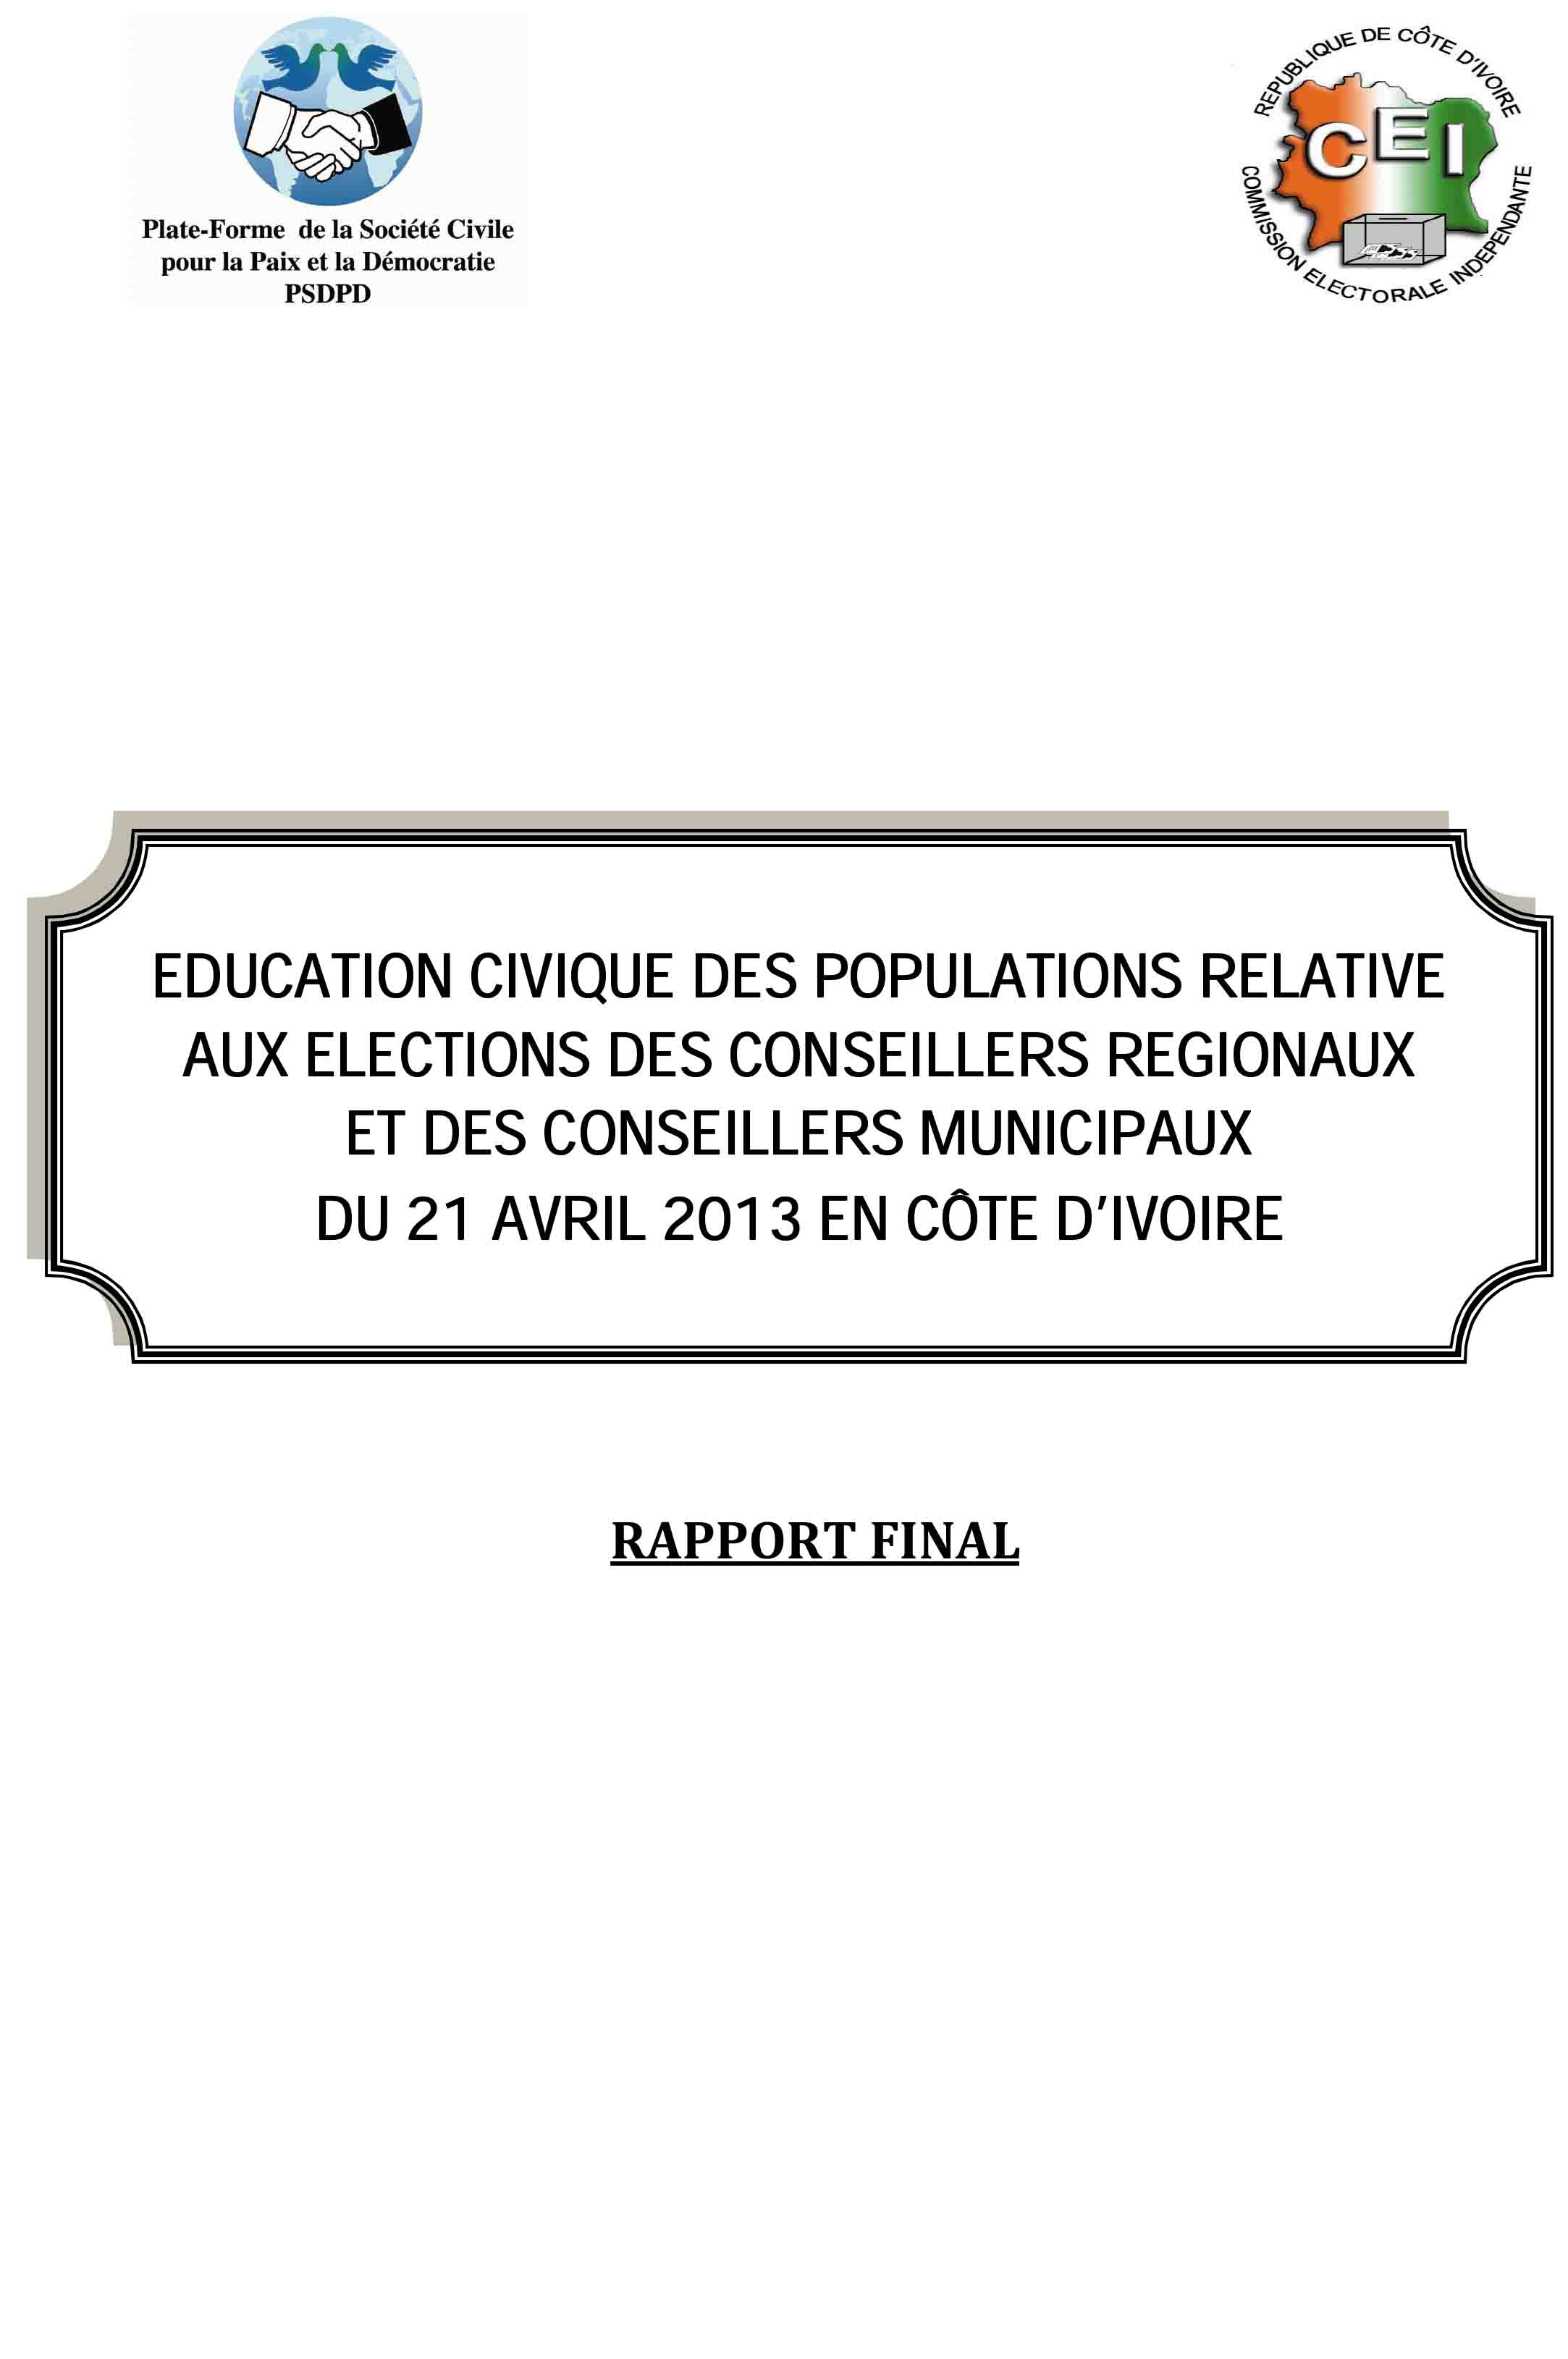 RAPPORT  SENSIBILISATION ELECTION COUPLEE 2013